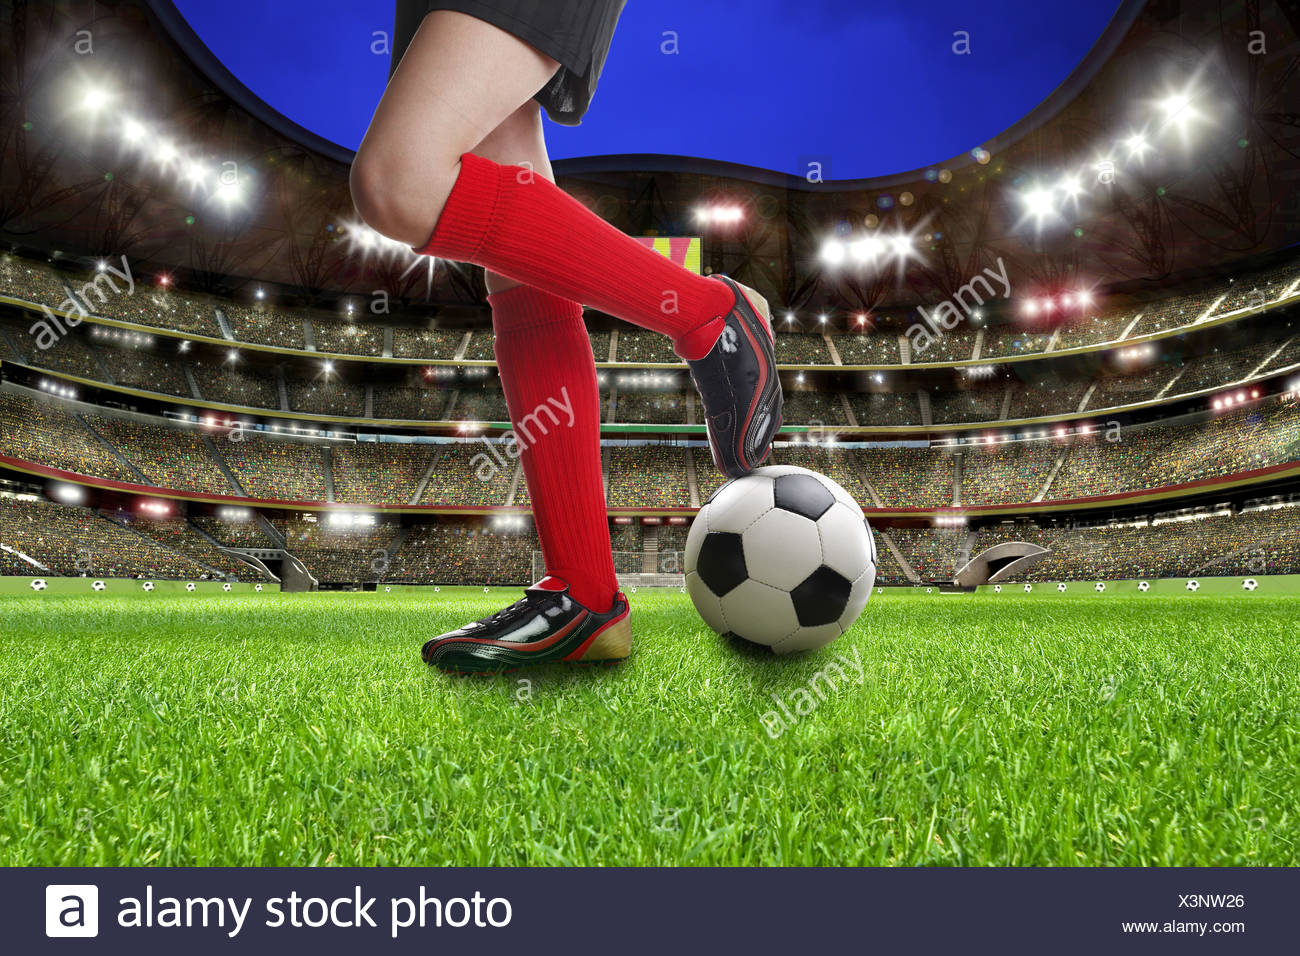 Legs of a female soccer player on a soccer ball at a football stadium, illustration - Stock Image